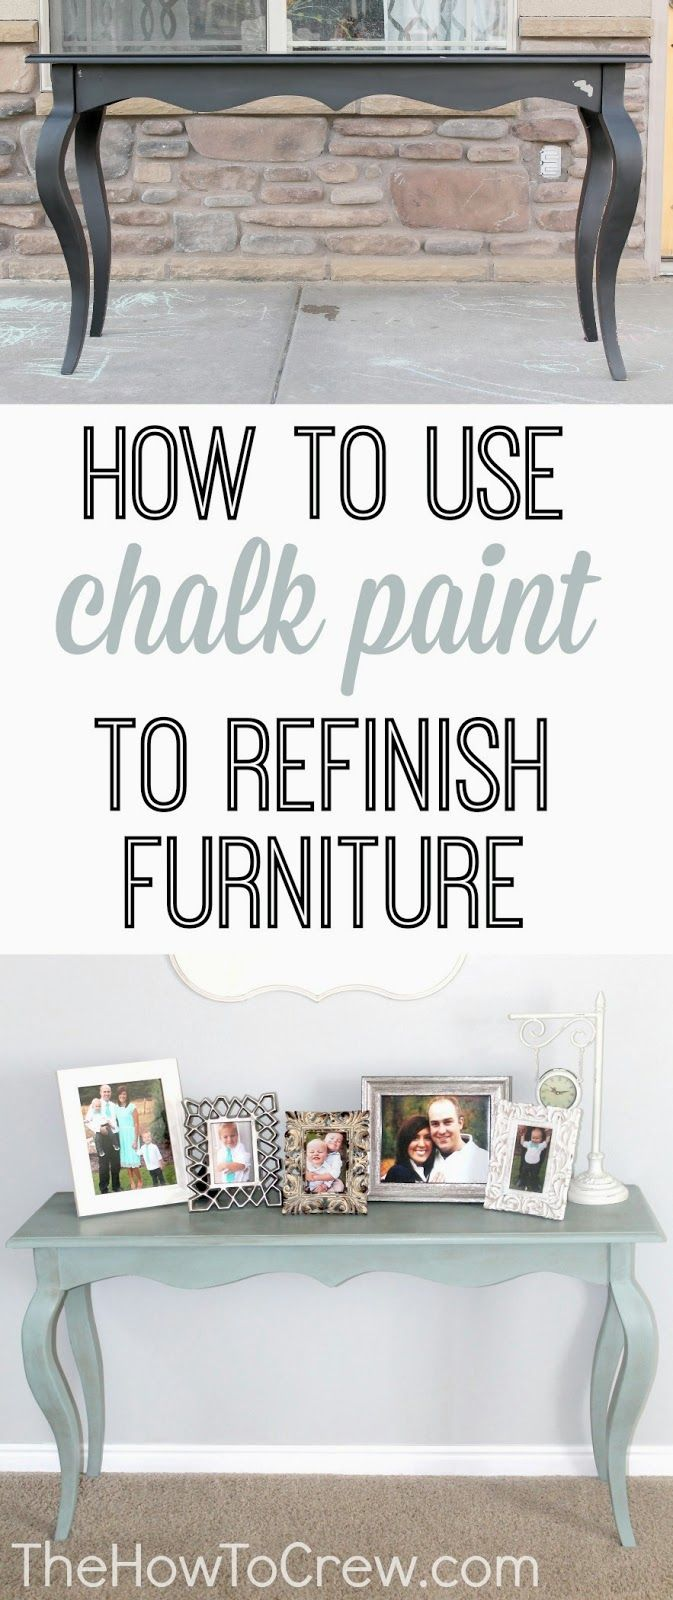 How To Use Chalk Paint to Refinish Furniture from TheHowToCrew.com.